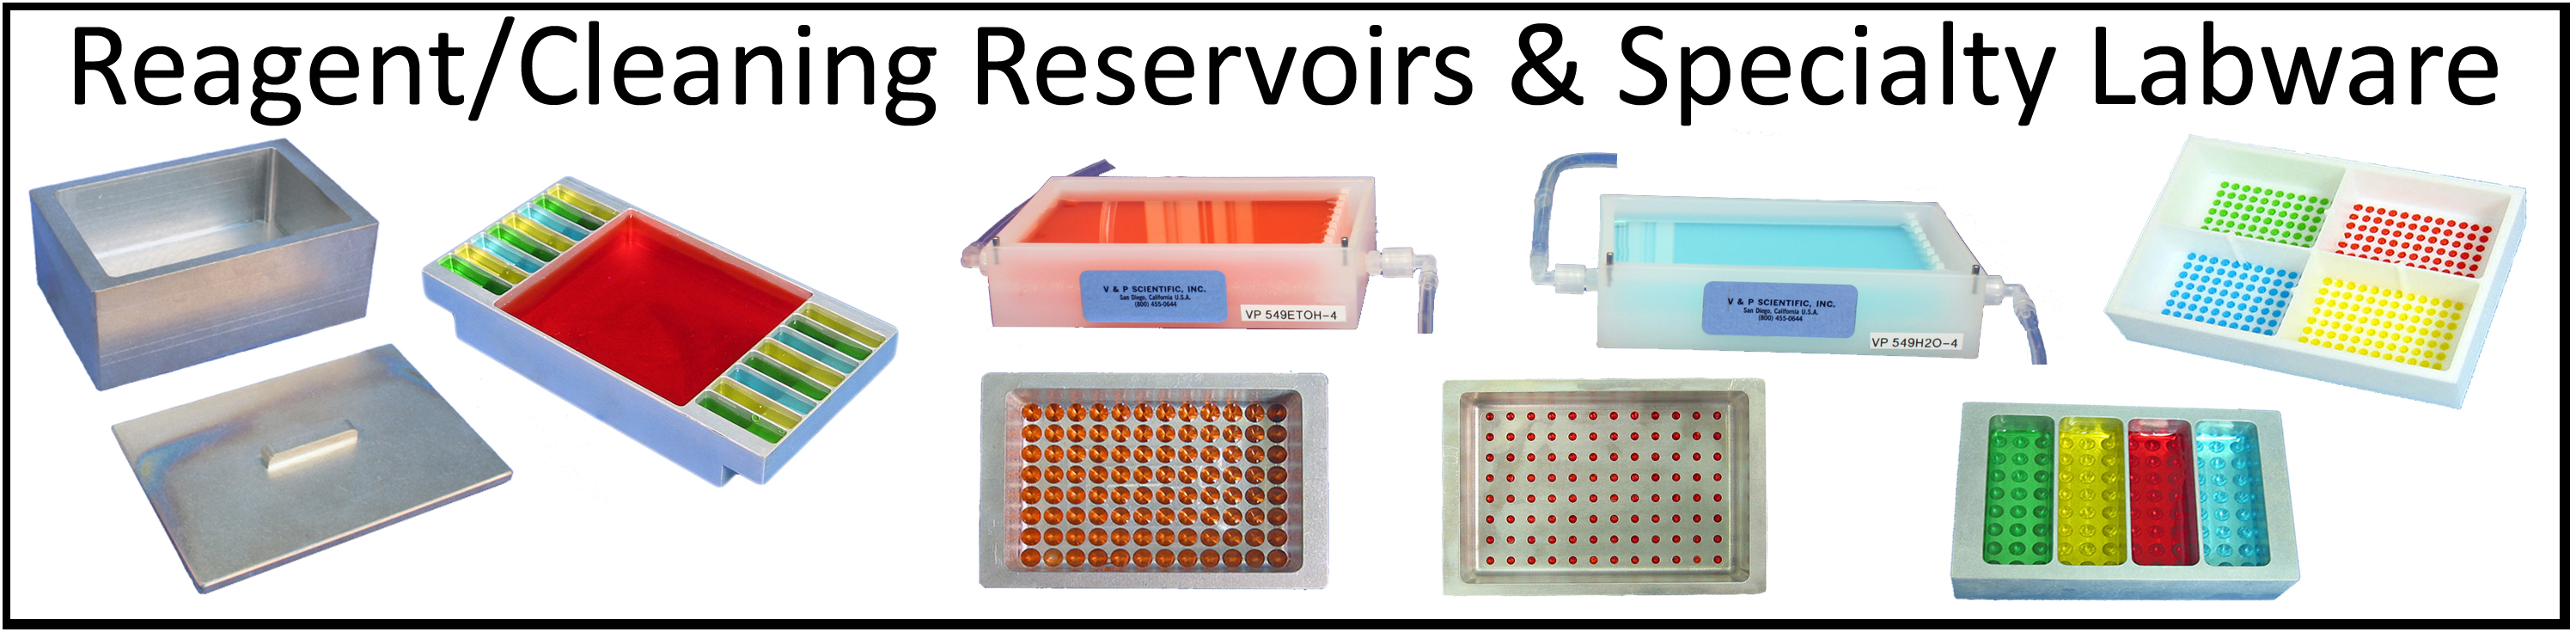 Reagent Reservoirs, Labware, Microplates, Specialty Labware, Controls, Dimples, Low Dead-Volume